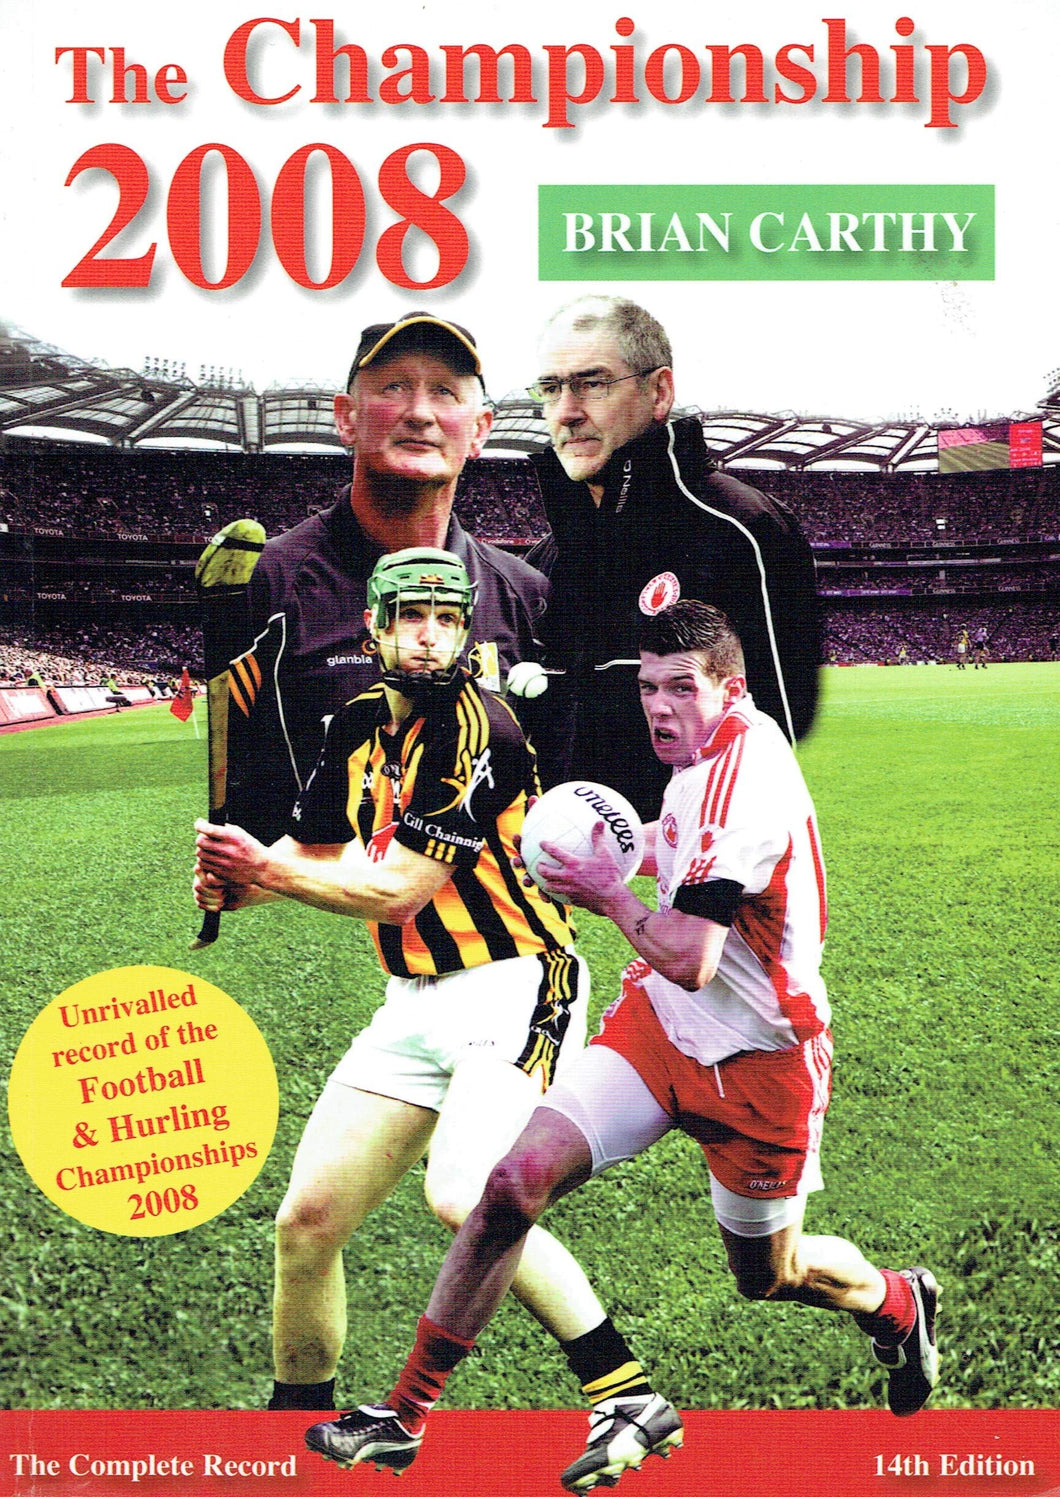 The Championship 2008 - The Complete Record, 14th Edition: Unrivalled Record of the Football and Hurling Championships 2008